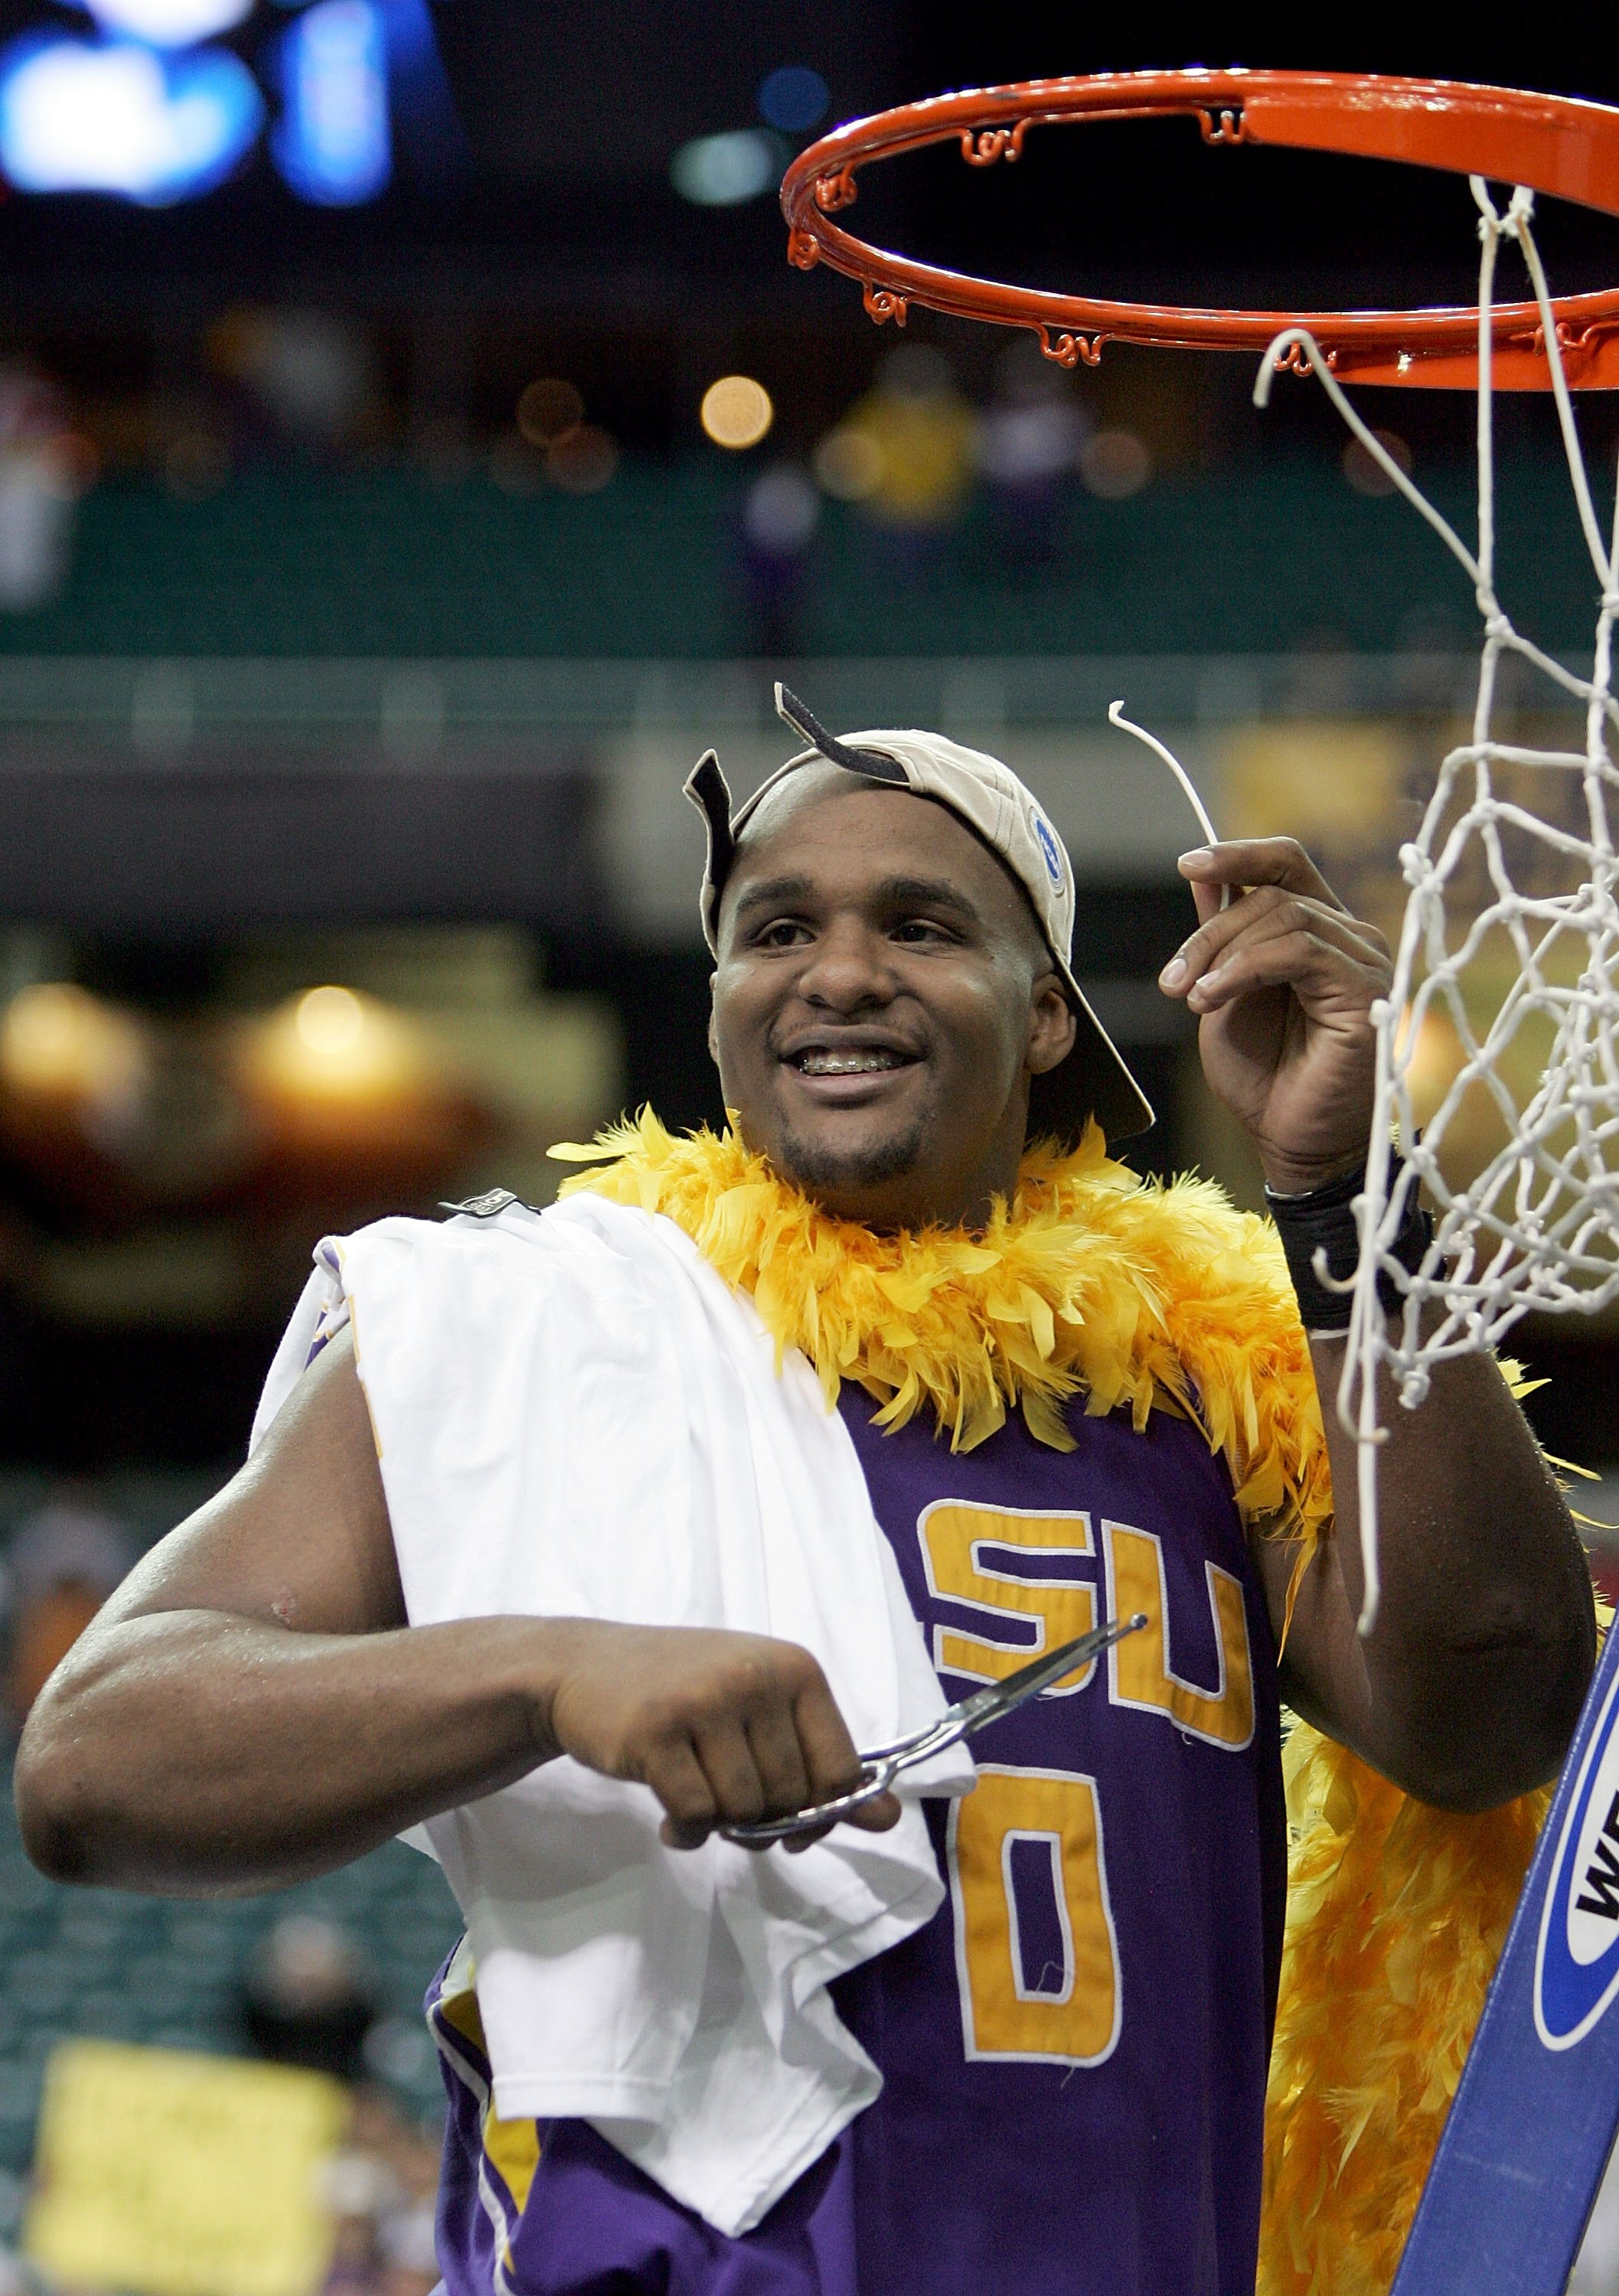 ATLANTA - MARCH 25:  Glen Davis #0 of the LSU Tigers cuts the net after the 70-60 overtime win over the Texas Longhorns during the fourth round game of the 2006 NCAA Division I Men's Basketball Tournament Regional at the Georgia Dome on March 25, 2006 in